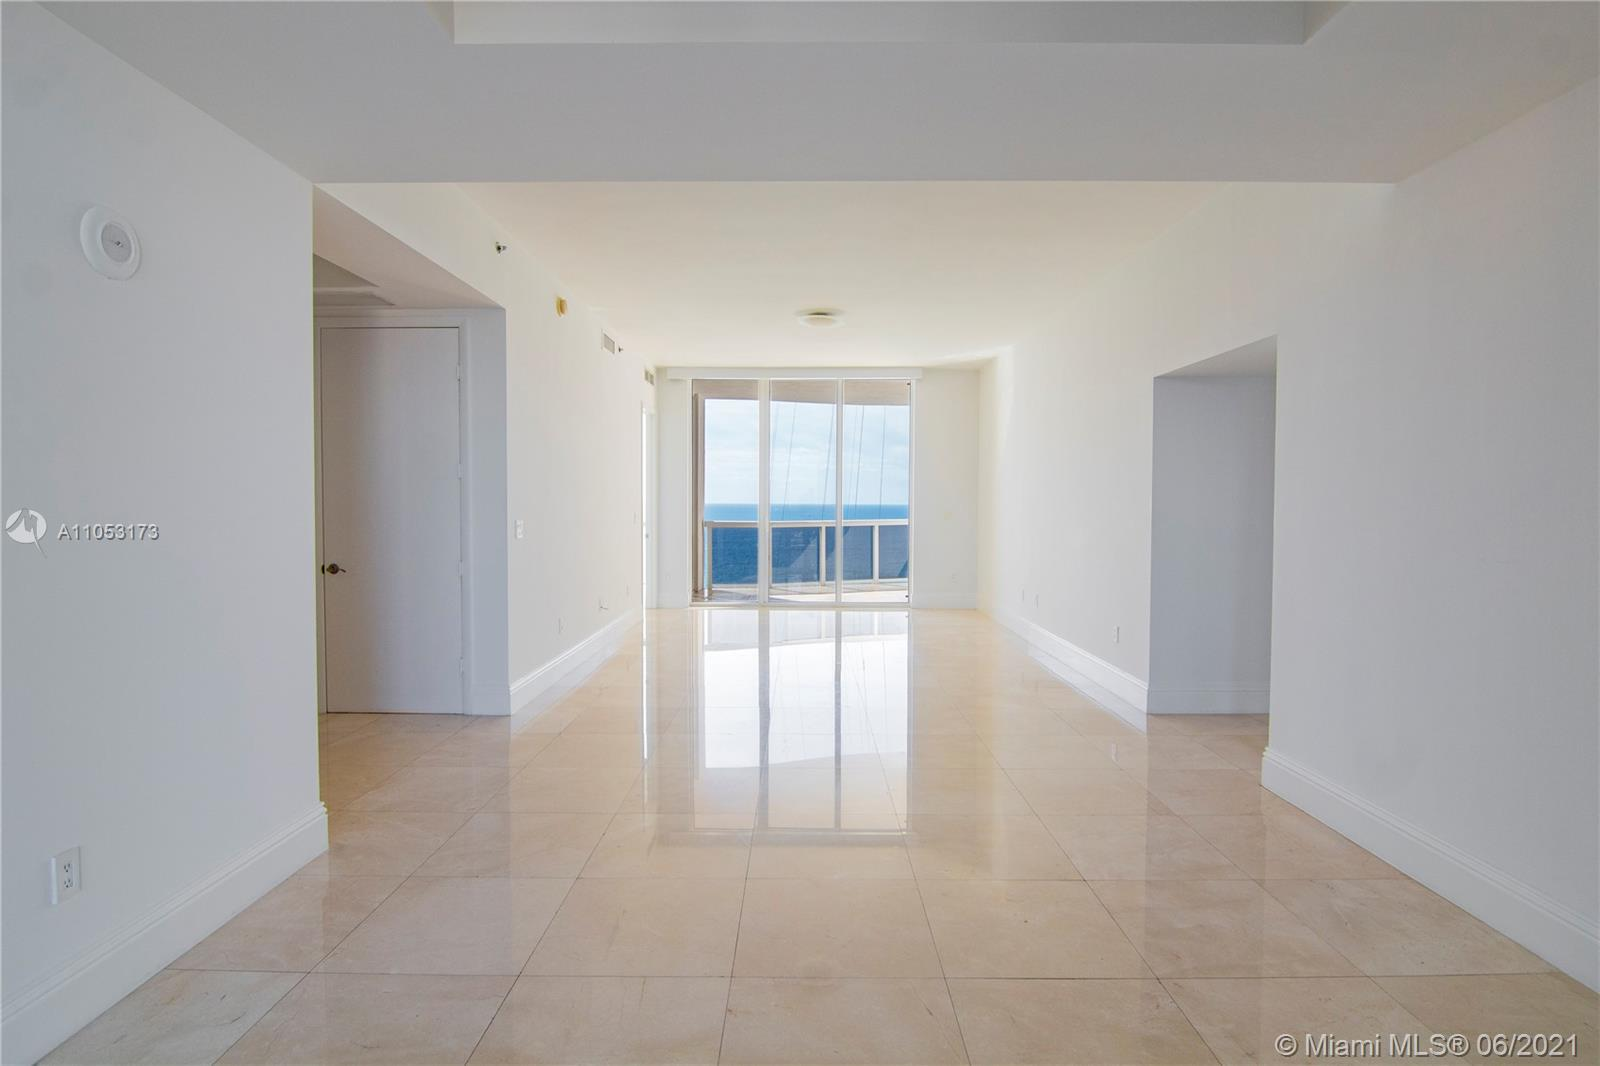 Stunning flow through unit at the prestigious Trump Tower III in Sunny Isles. Unit 1206 offers unparalleled ocean and intracoastal views, from a spacious and open floor plan, throughout it`s 2,600 square feet of pure luxury living spaces. Unit offers marble floors throughout and many great upgrades, such as, electric blinds in all rooms, recessed lighting and nest technology system. Enjoy endless summer days in this resort oriented property that contemplates a great beach club and oceanfront restaurant, oceanfront gym and negative infinity oceanfront pool and 24 hours concierge services.